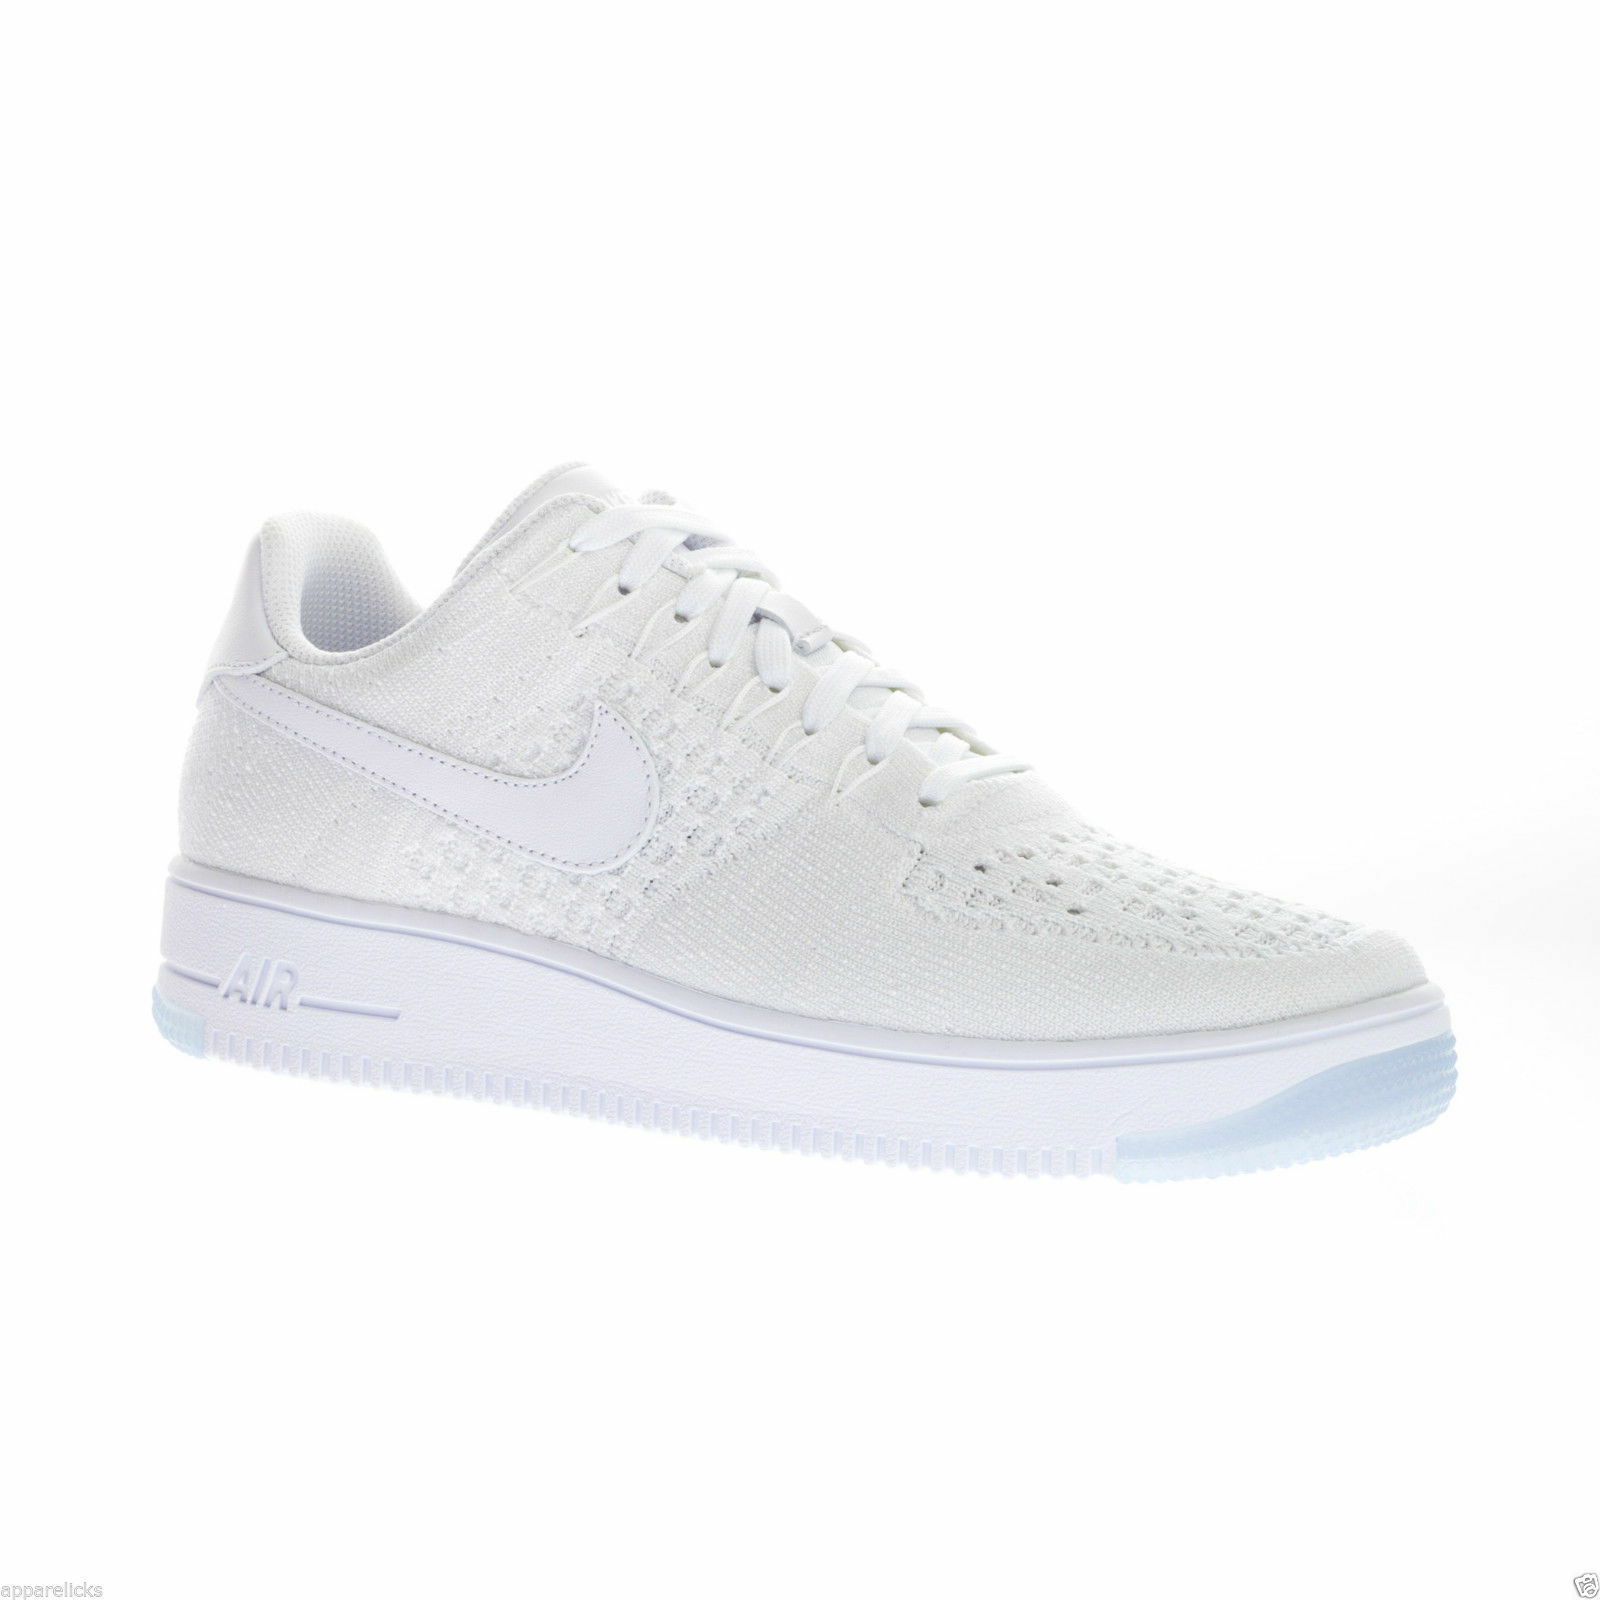 Nike Flyknit Women's Air Force 1 Flyknit Nike Low Top Running Gym Trainers White 820256-101 db366d